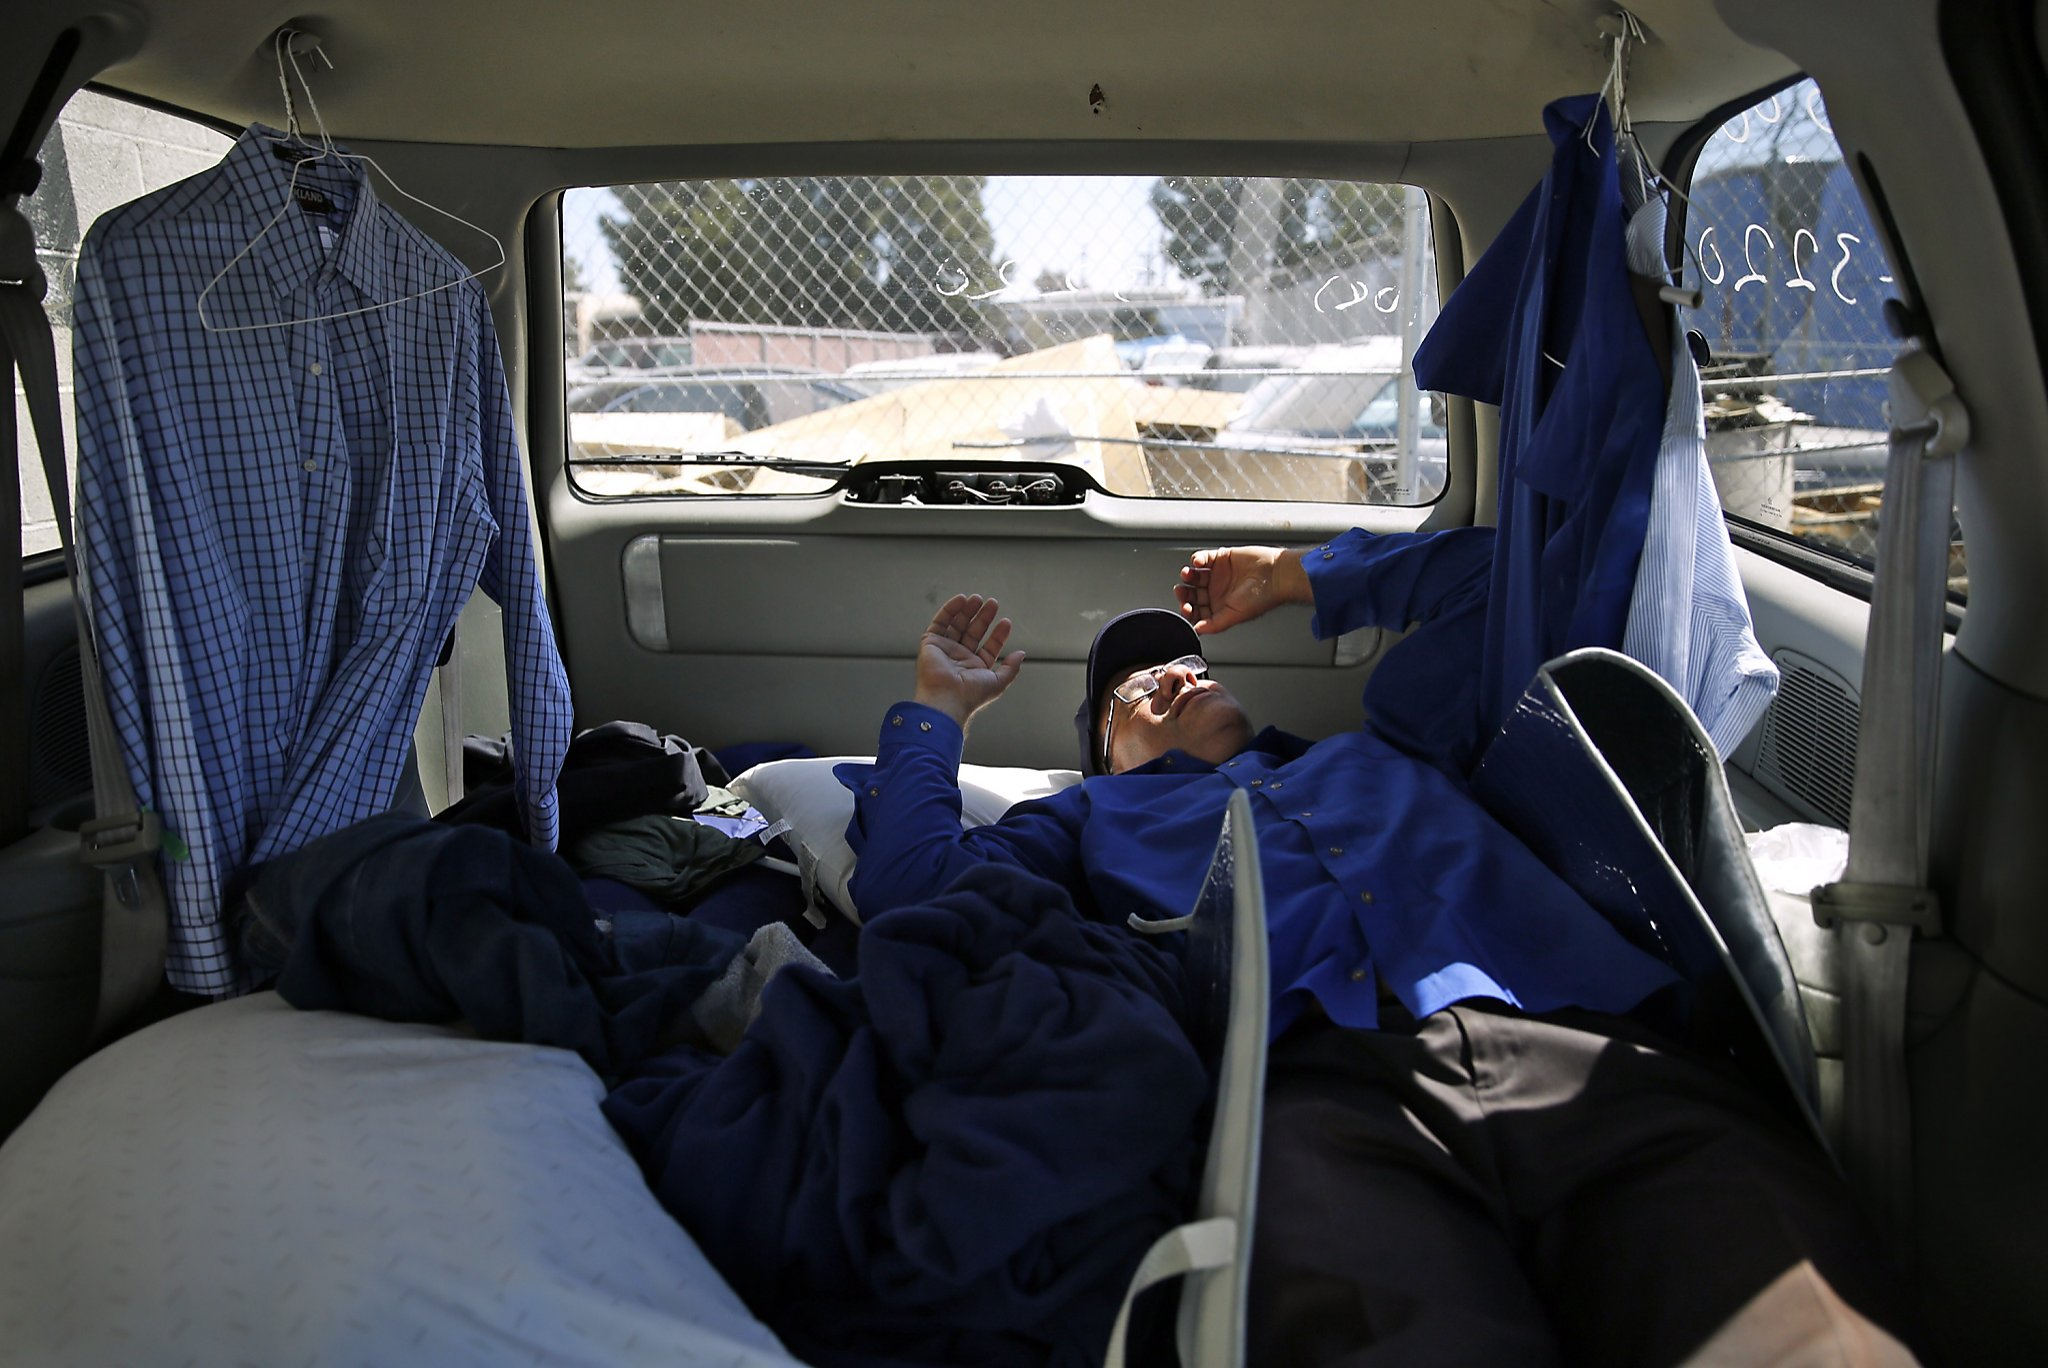 Tech Bus Drivers Forced To Live In Cars To Make Ends Meet